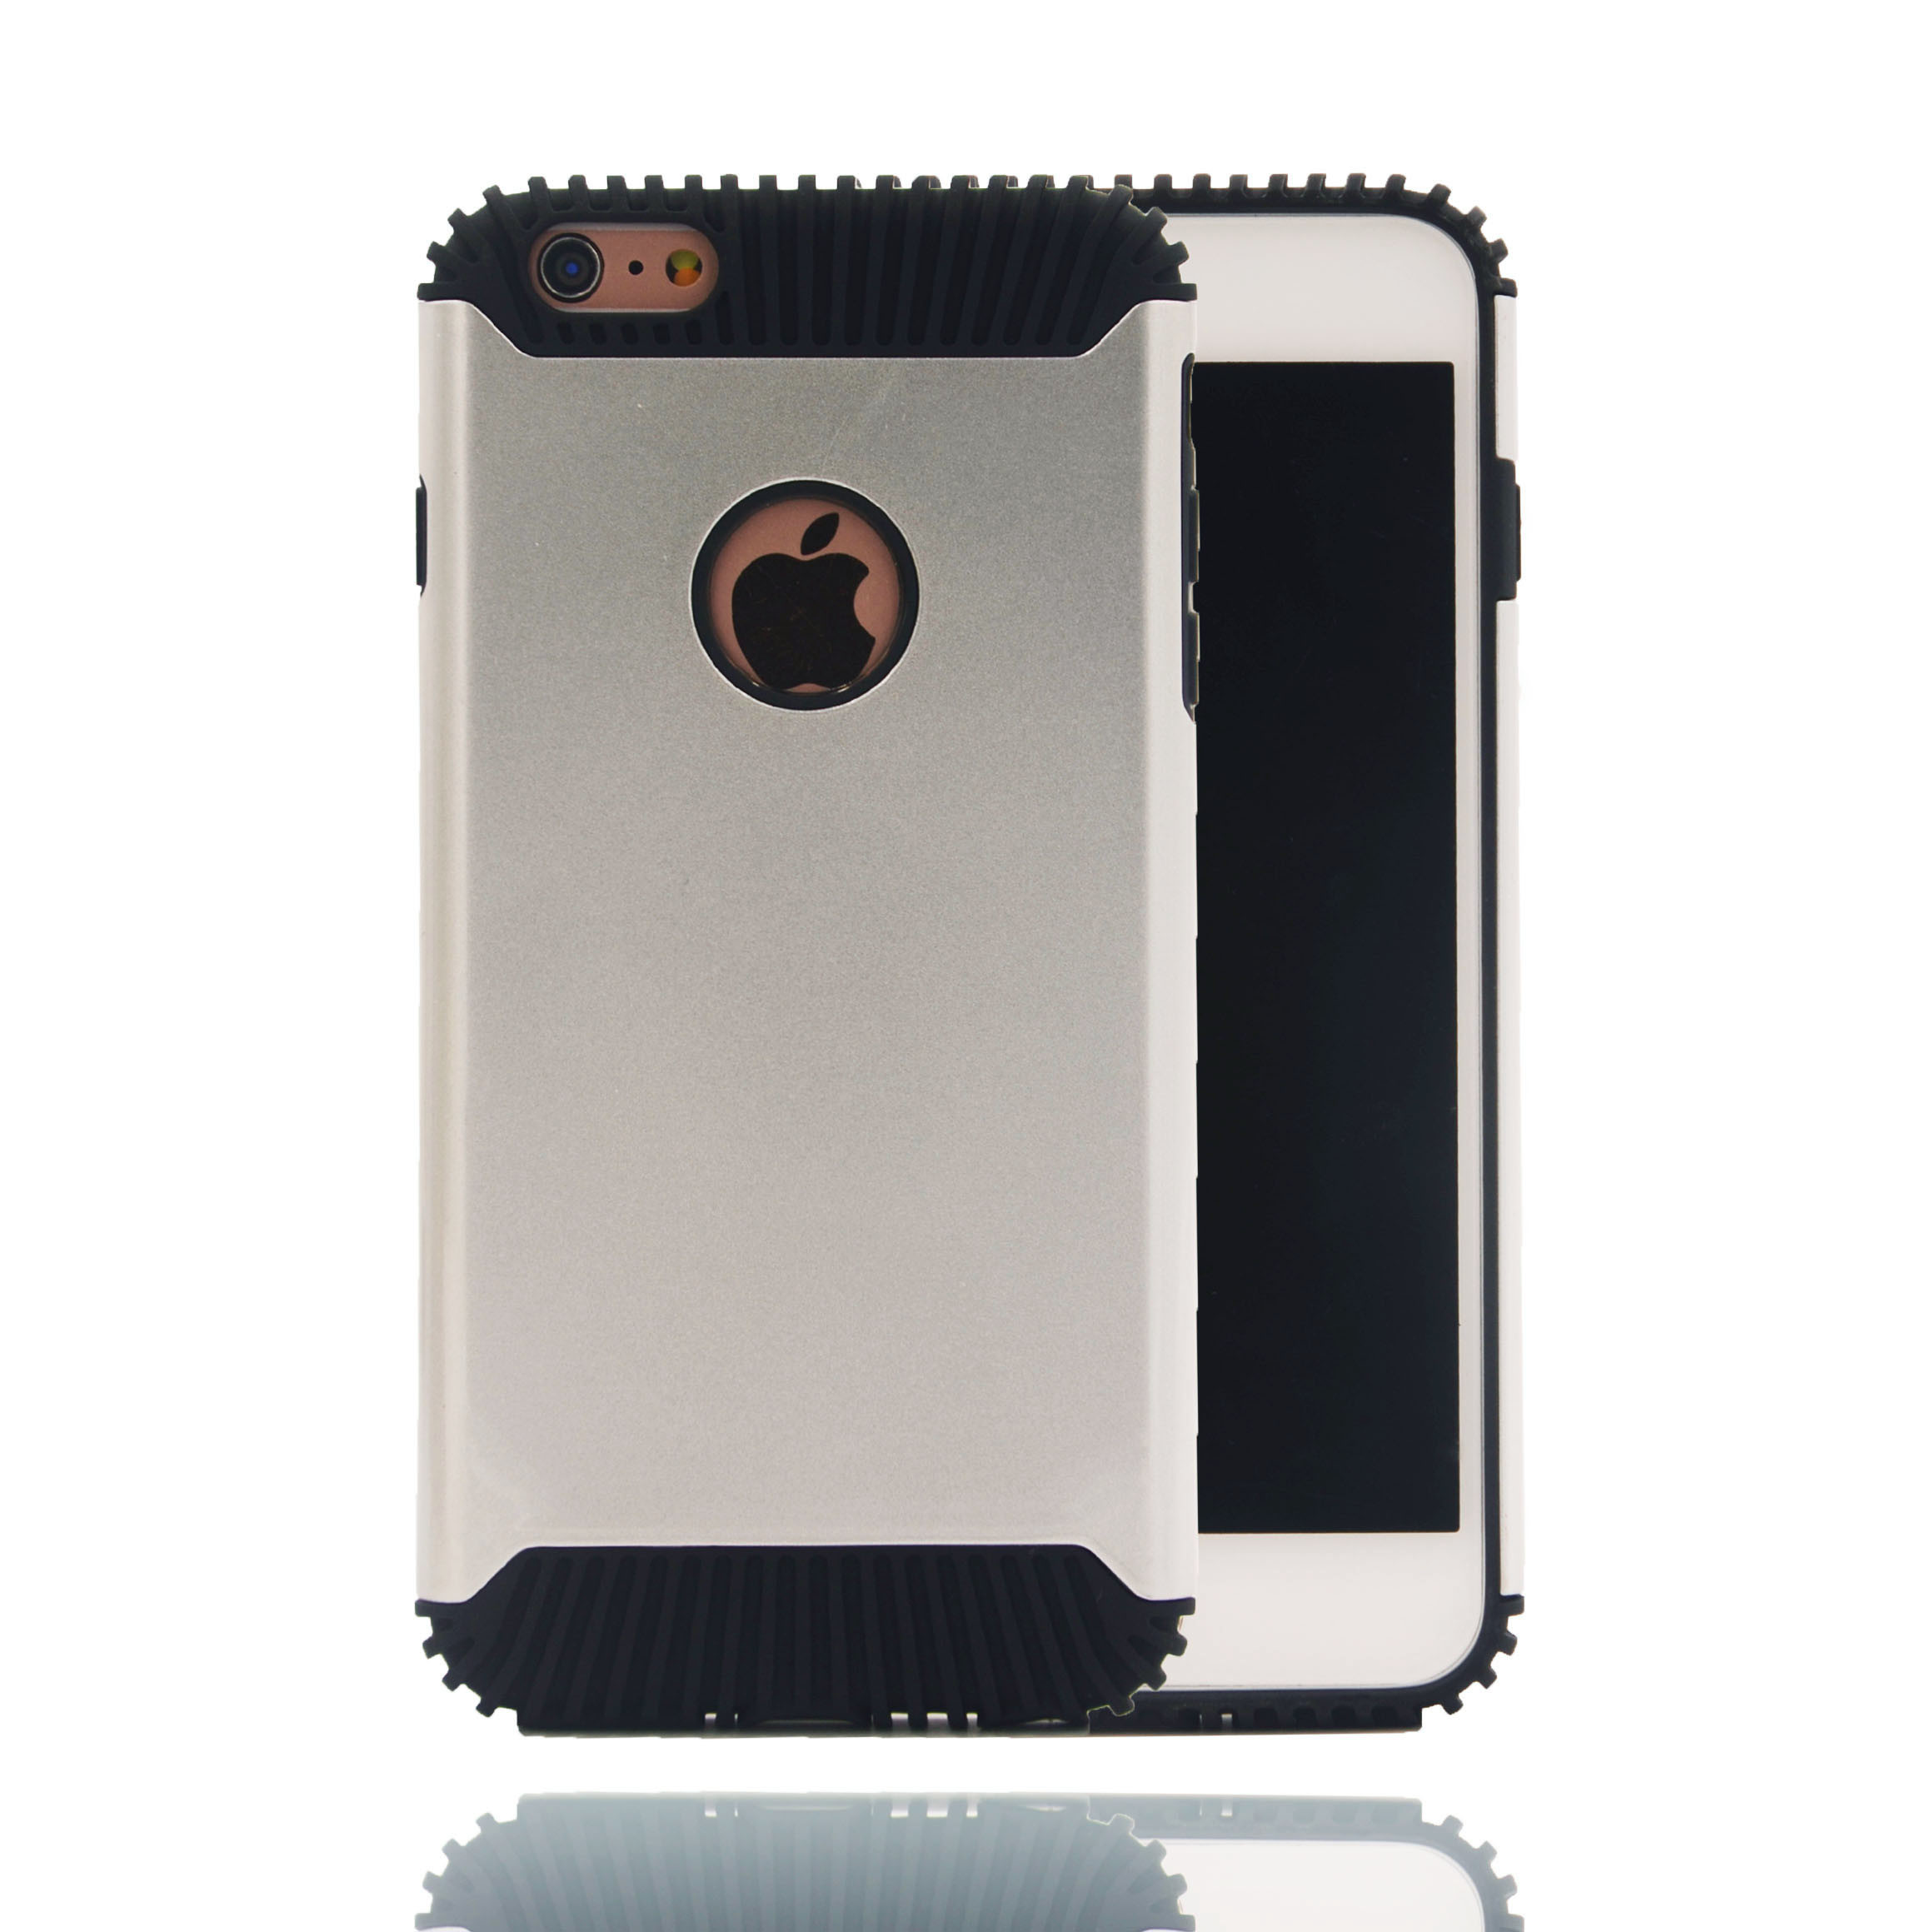 High Quality Soft TPU + Hard PC Mobile Phone Accessories for iPhone 6/6 Plus iPhone 7/7 Plus Case (XSEH-035)